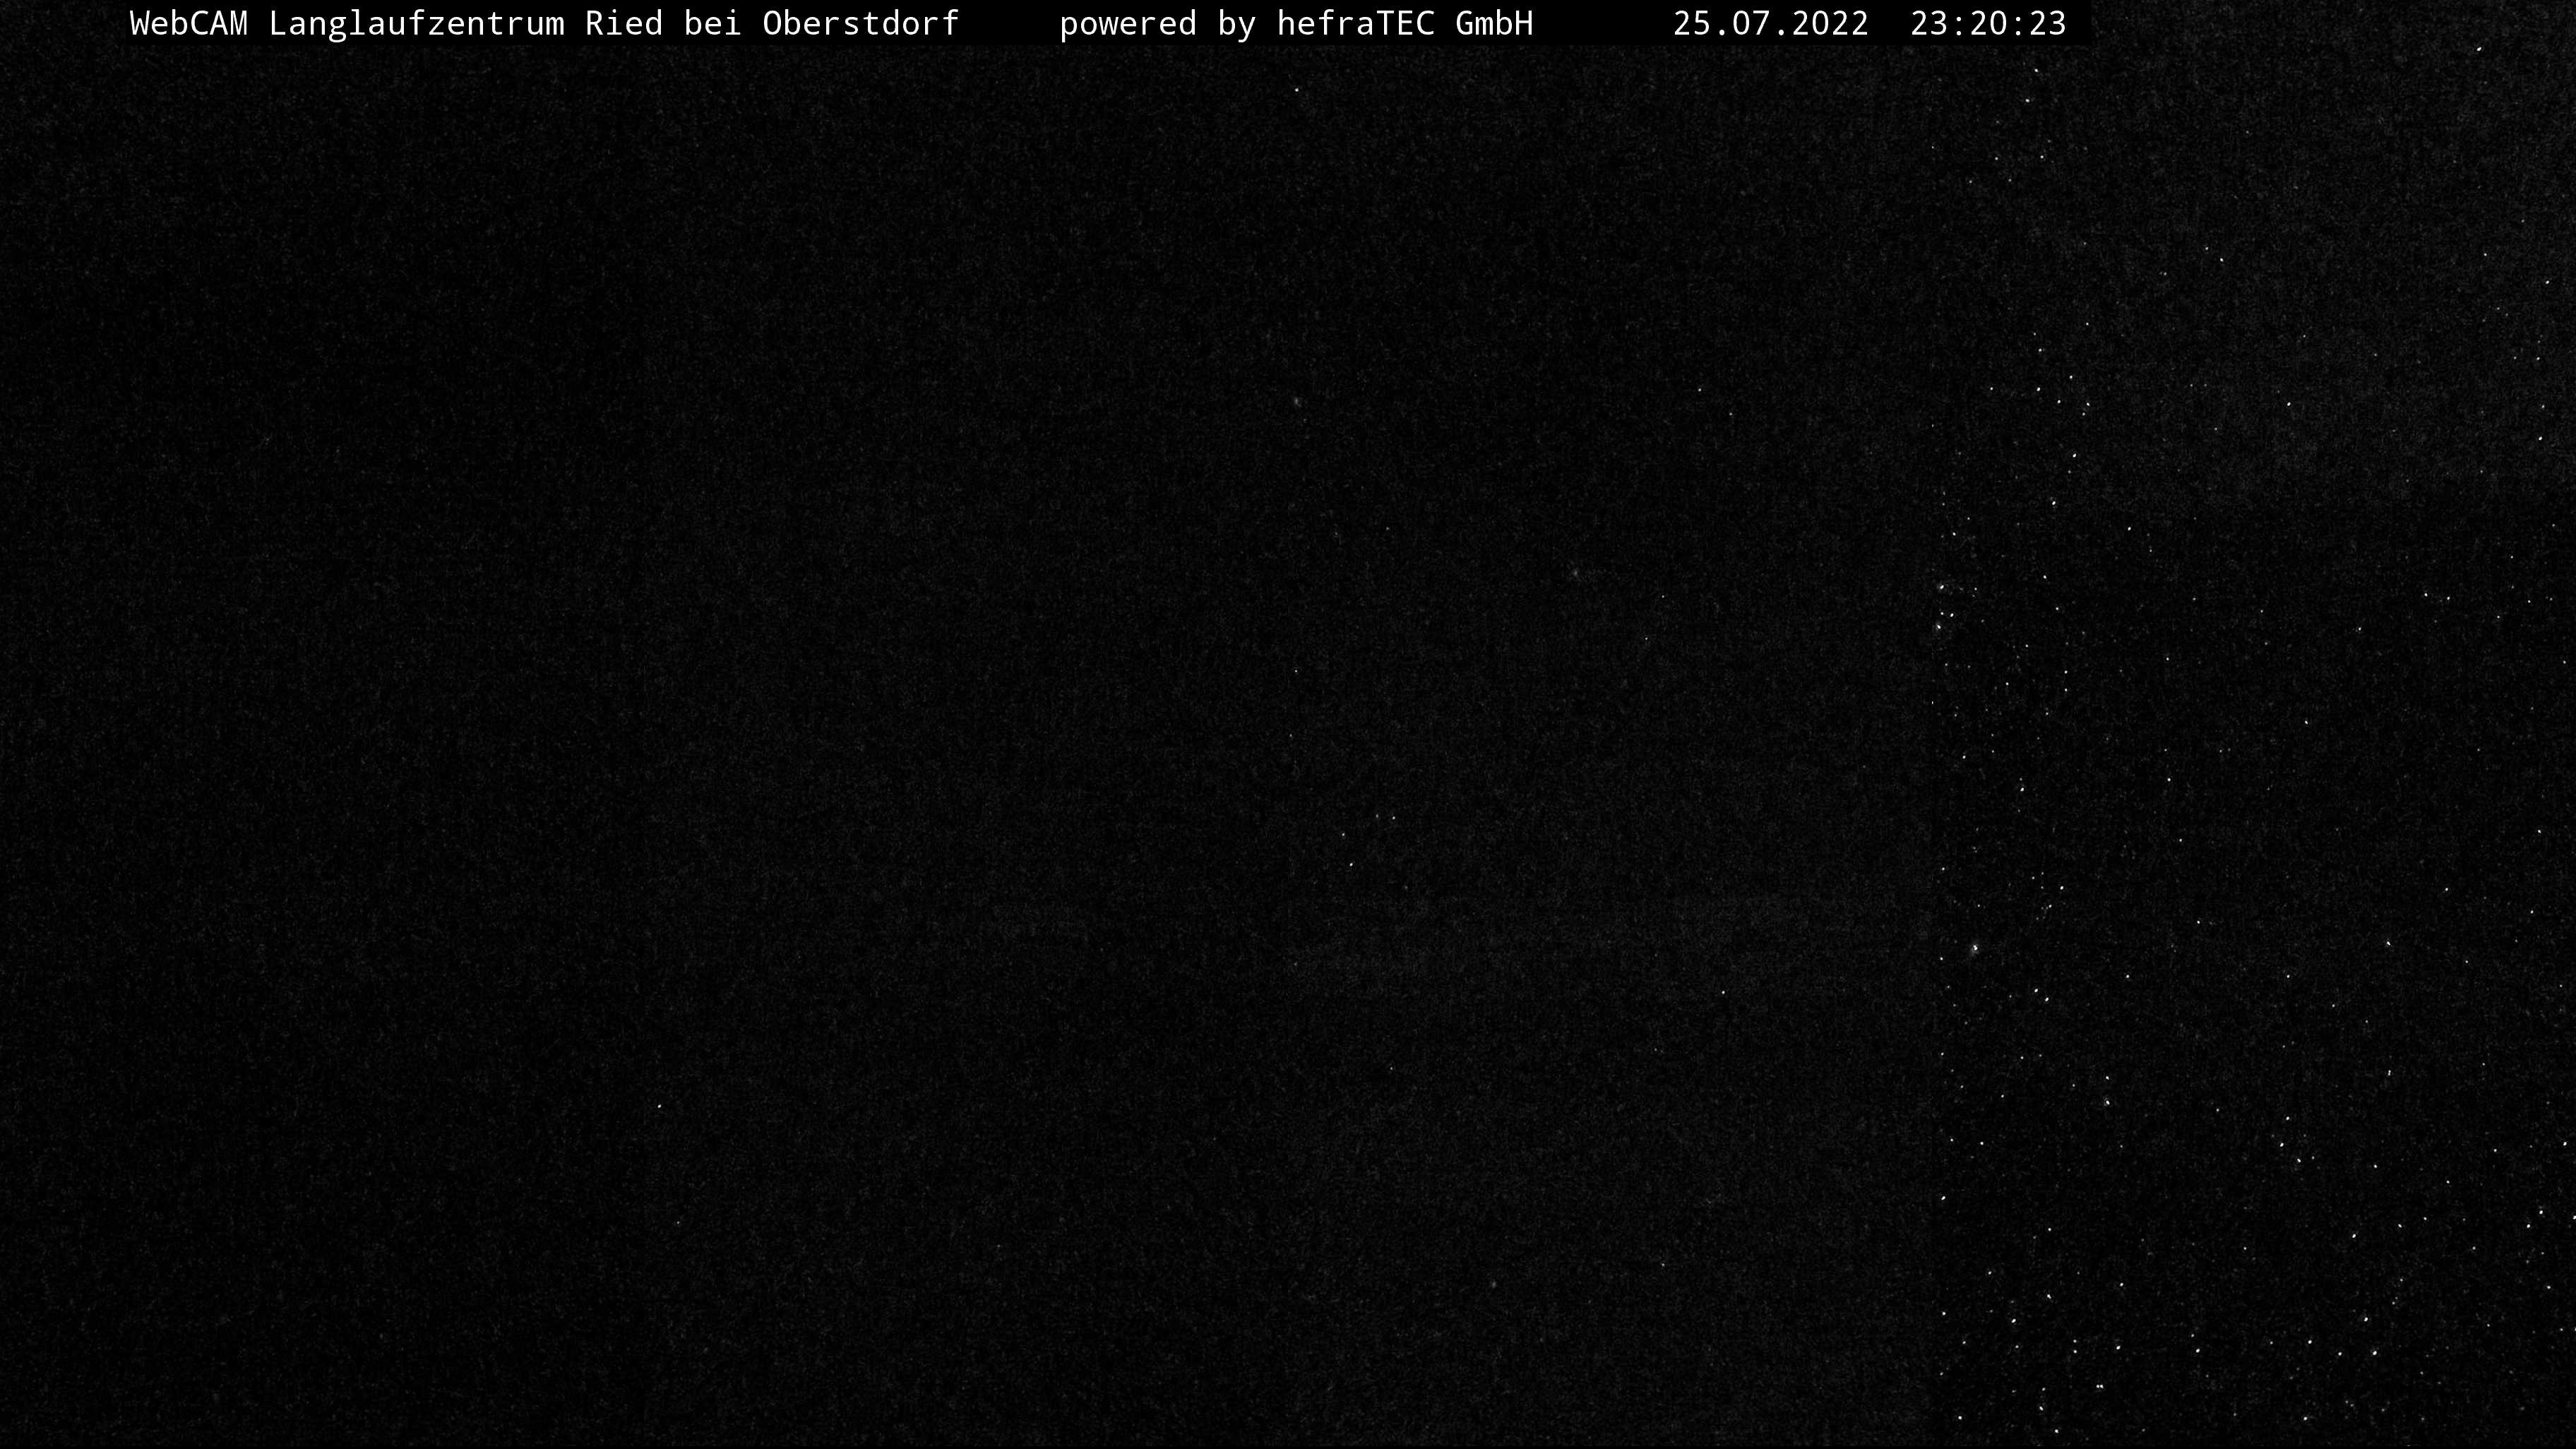 Webcam: Langlaufstadion Ried